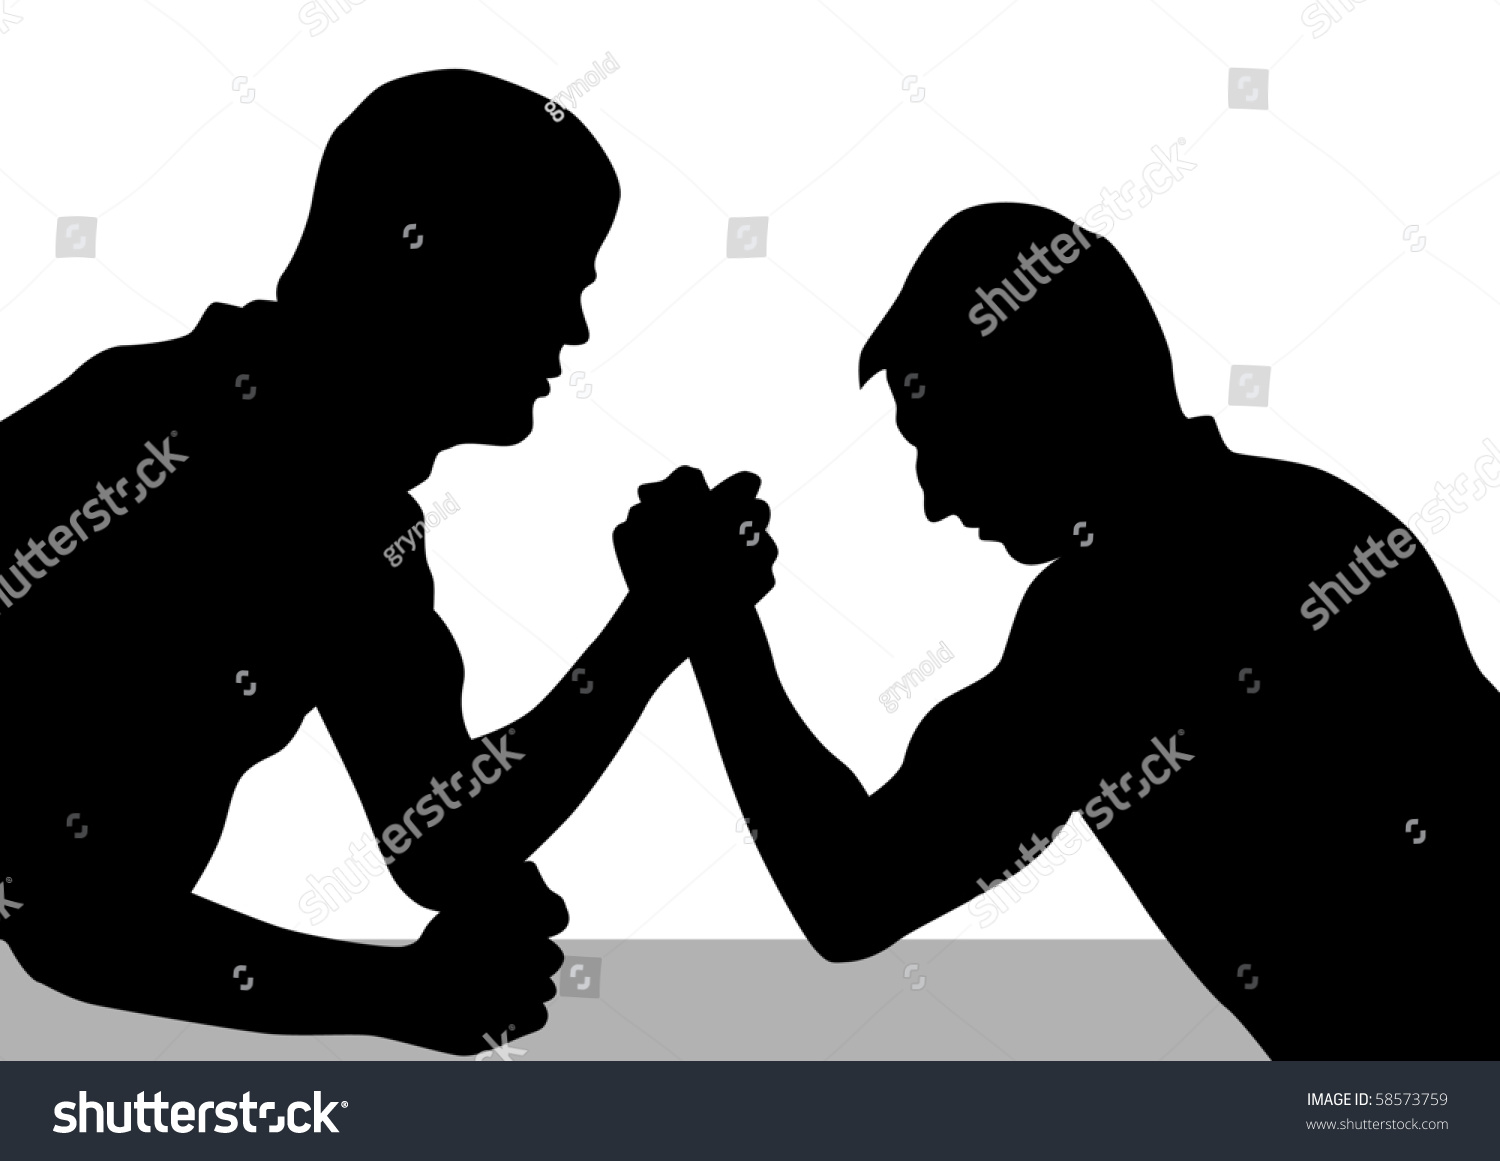 drawing competitions armwrestling silhouettes of two men